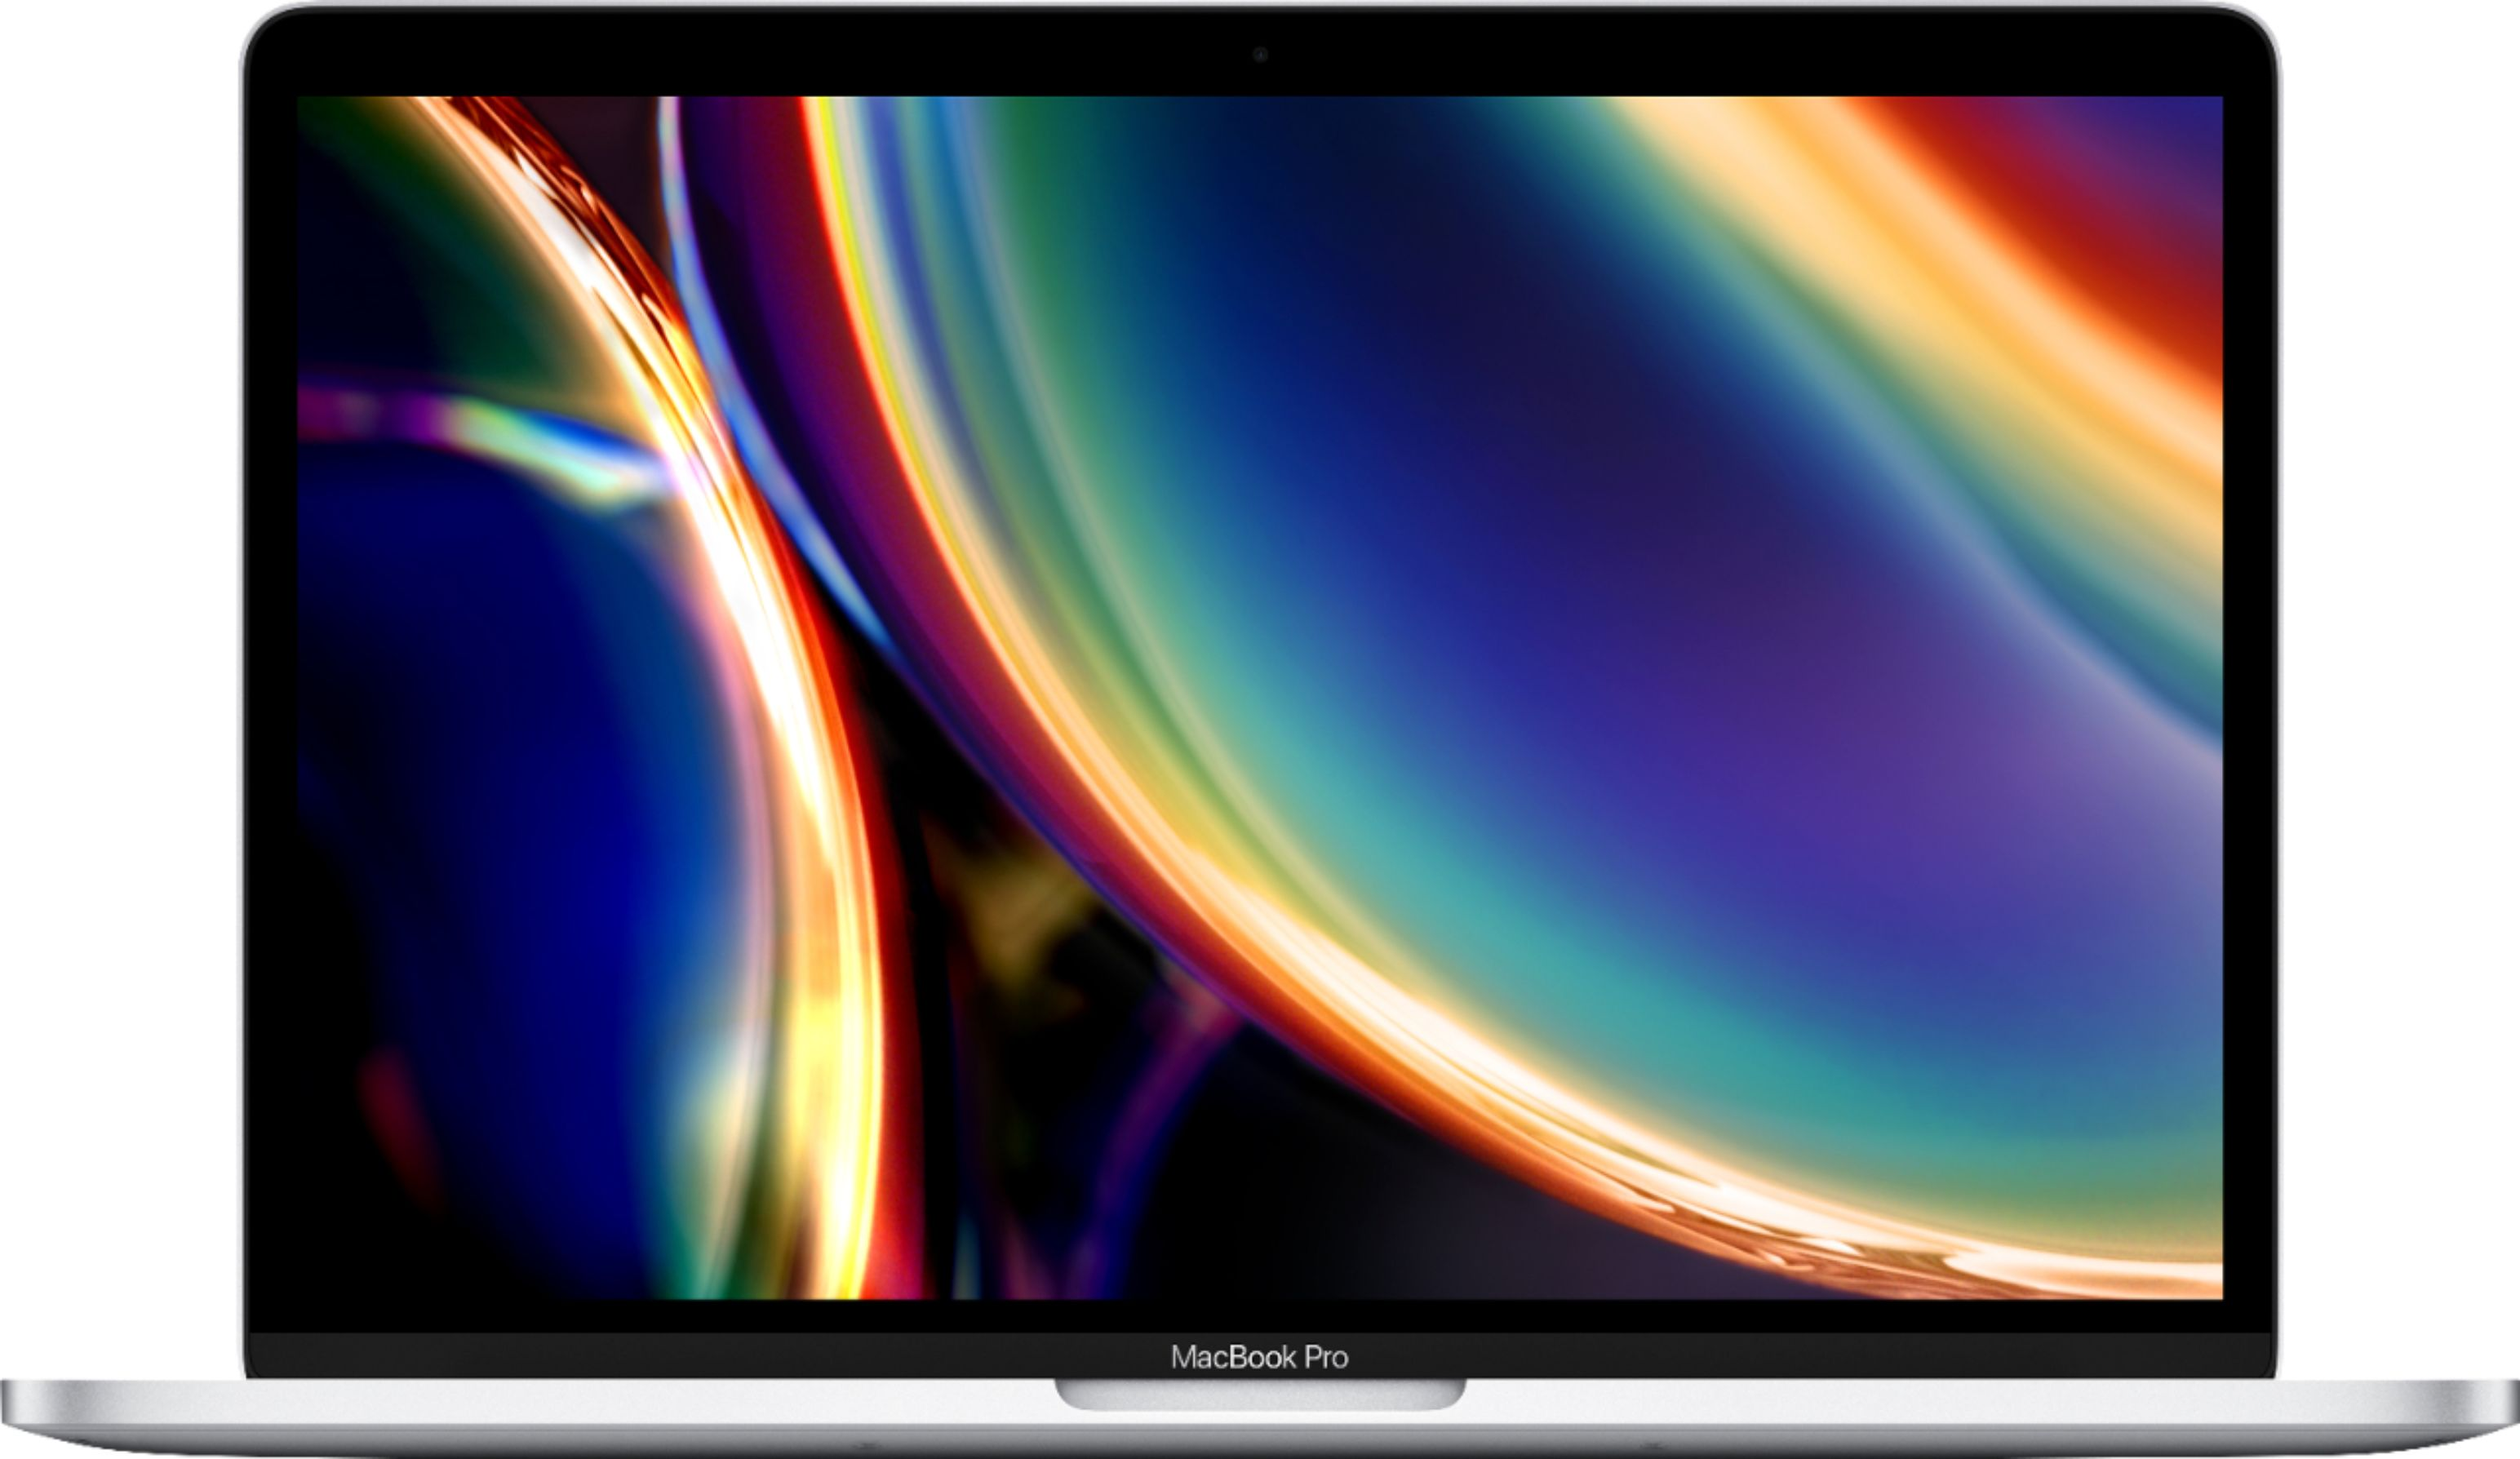 "Apple - MacBook Pro - 13"" Display with Touch Bar - Intel Core i5 - 8GB Memory - 512GB SSD (Latest Model) - Silver"